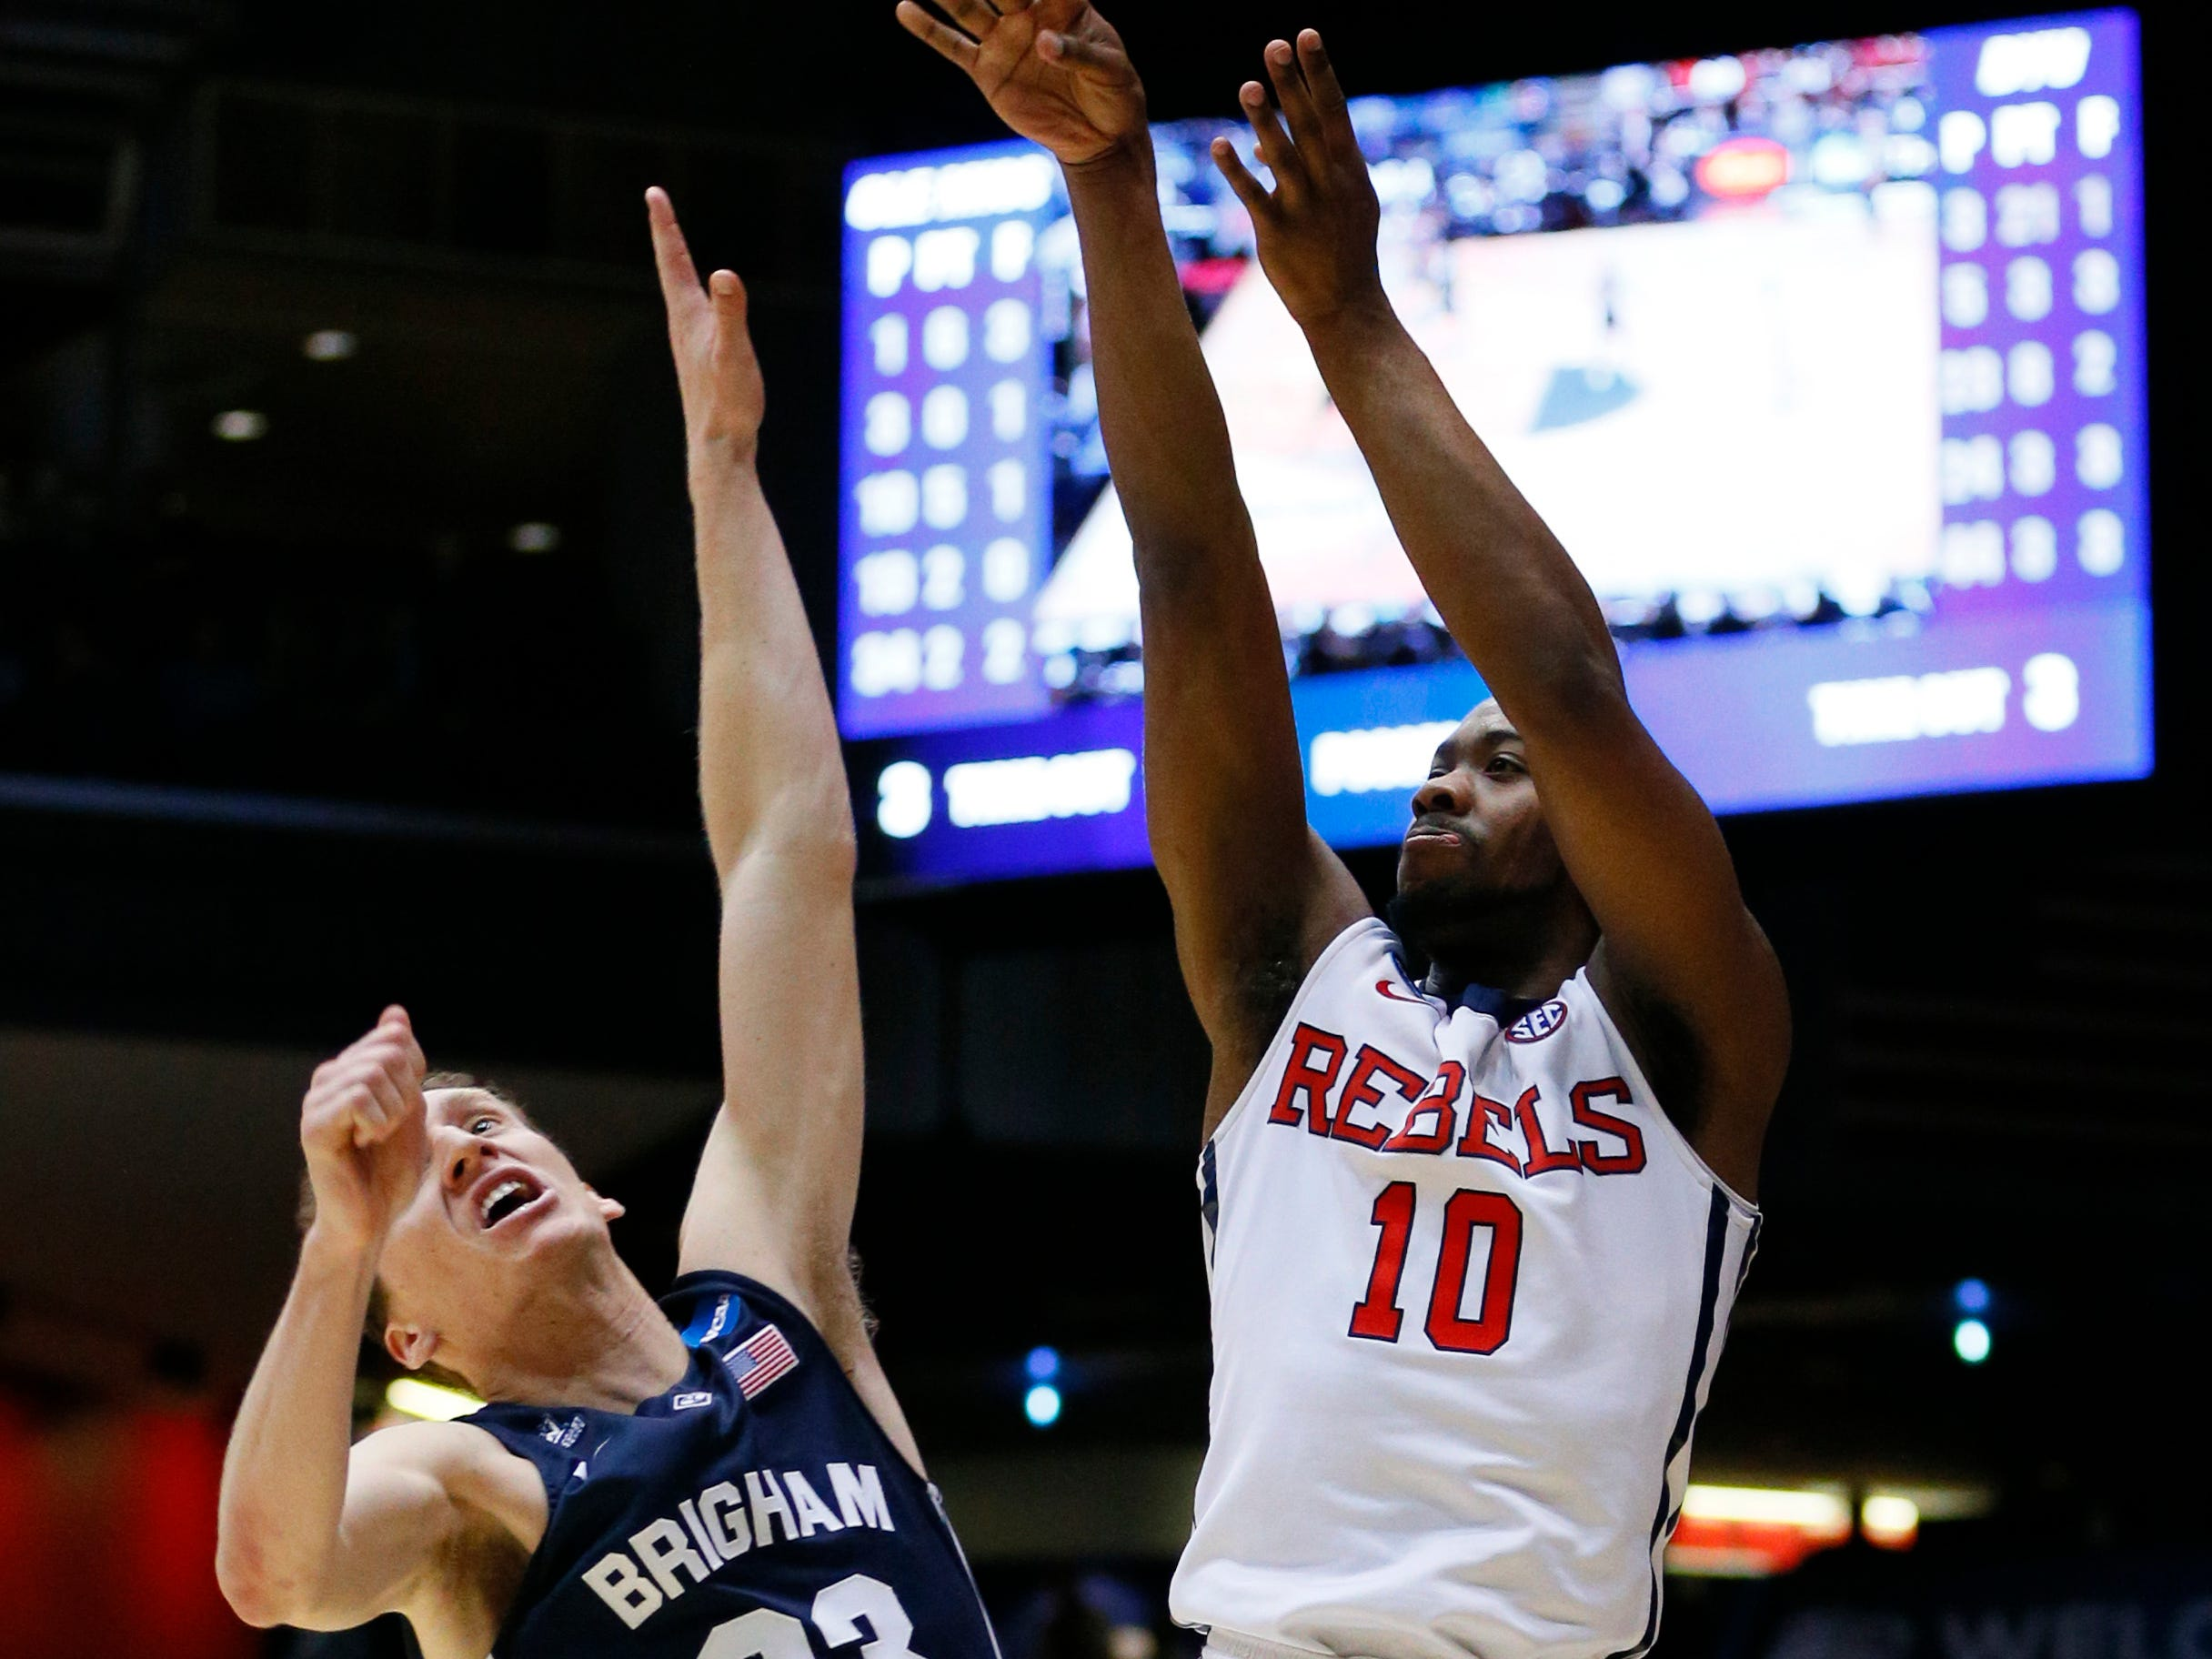 Mar 17, 2015; Dayton, OH, USA; Mississippi Rebels guard Ladarius White (10) shoots while defended by Brigham Young Cougars guard Skyler Halford (23) during the second half in the first round of the 2015 NCAA Tournament at UD Arena. Mandatory Credit: Rick Osentoski-USA TODAY Sports